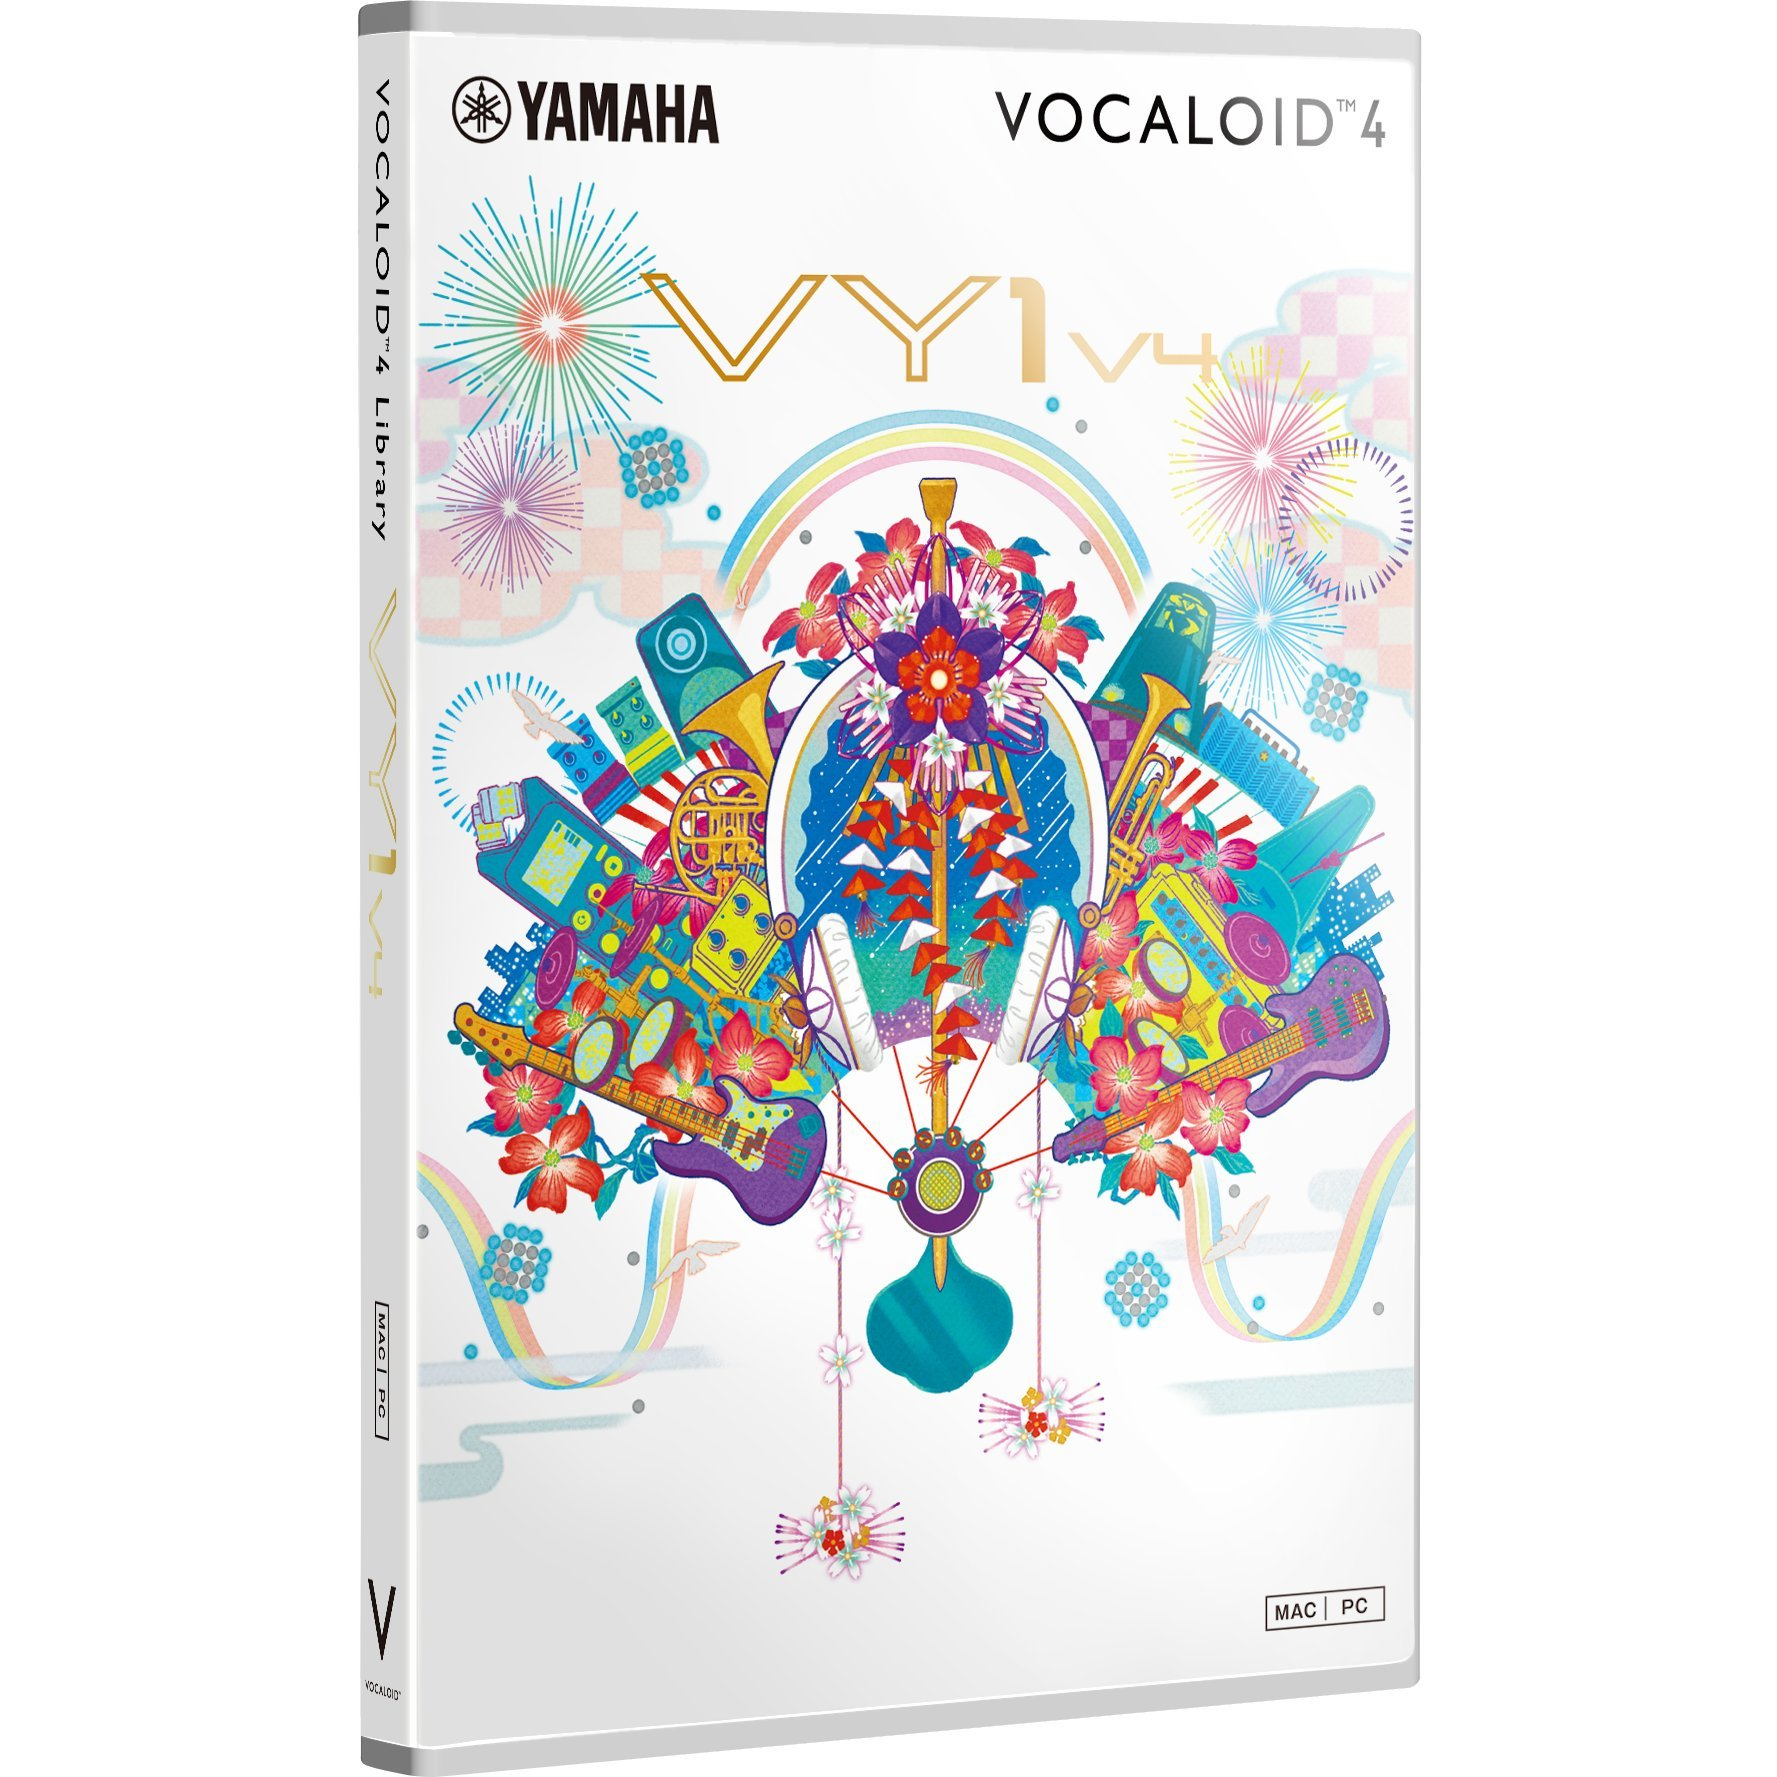 VOCALOID4 Library VY1V4 by YAMAHA